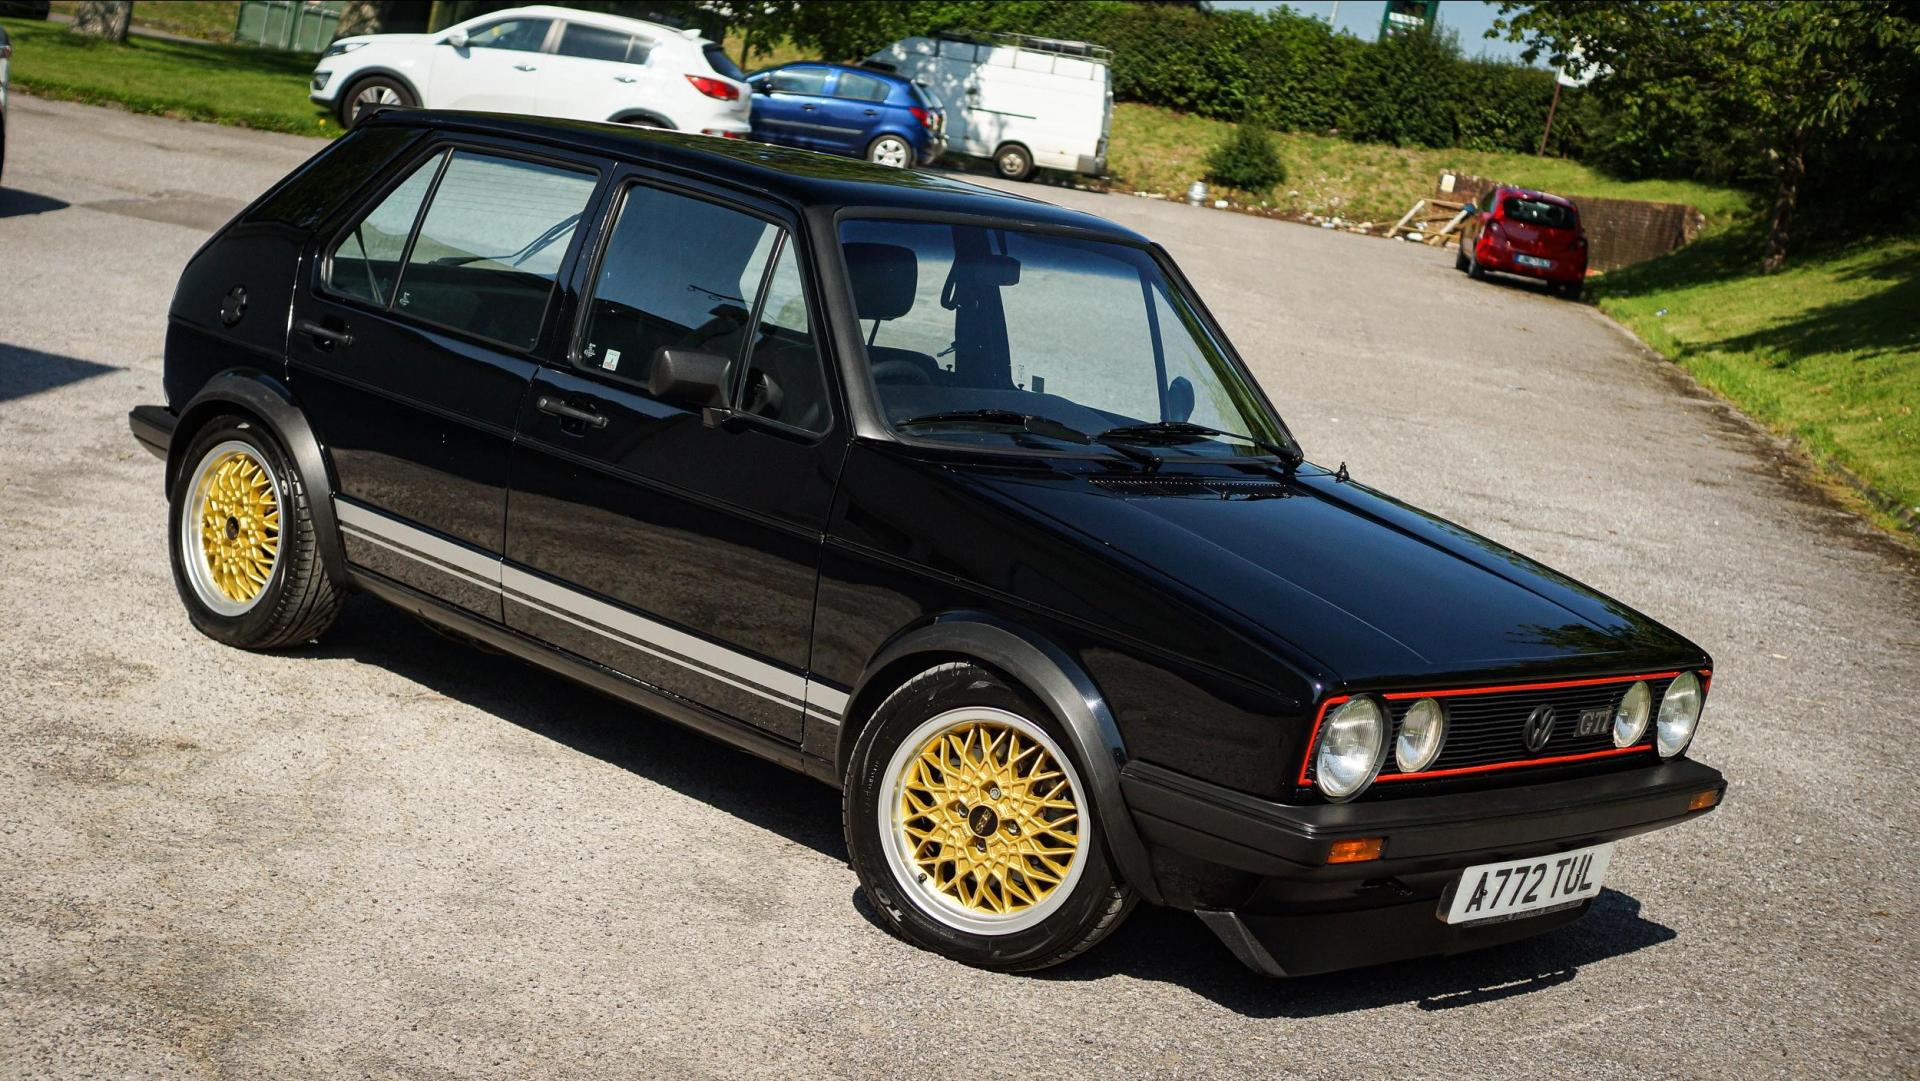 The MK1 Volkswagen Golf GTI has proved popular at auction.